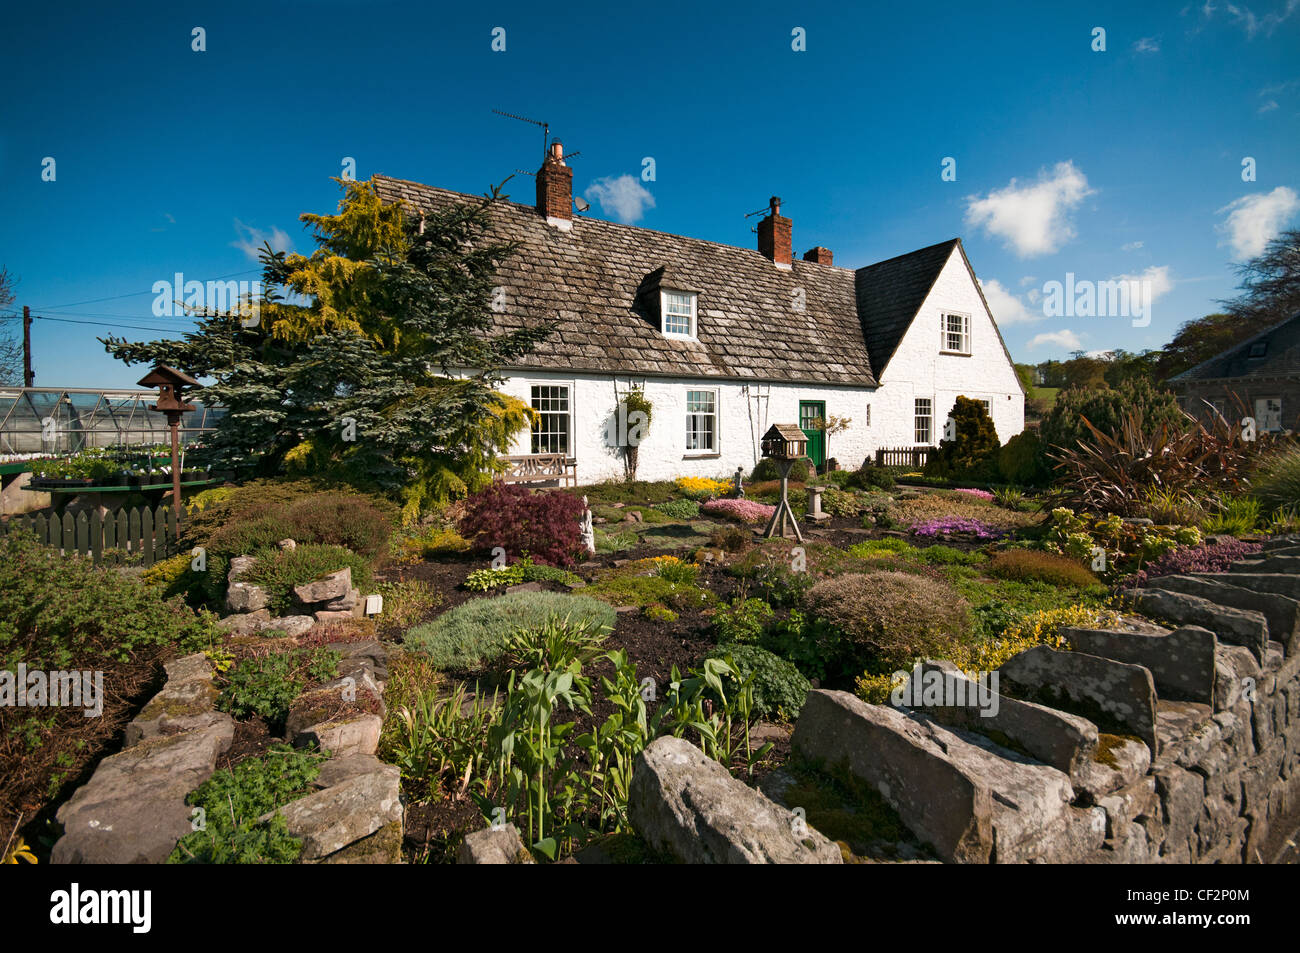 A country cottage and garden in the picturesque village of Etal in the north east of England, close to the border Stock Photo